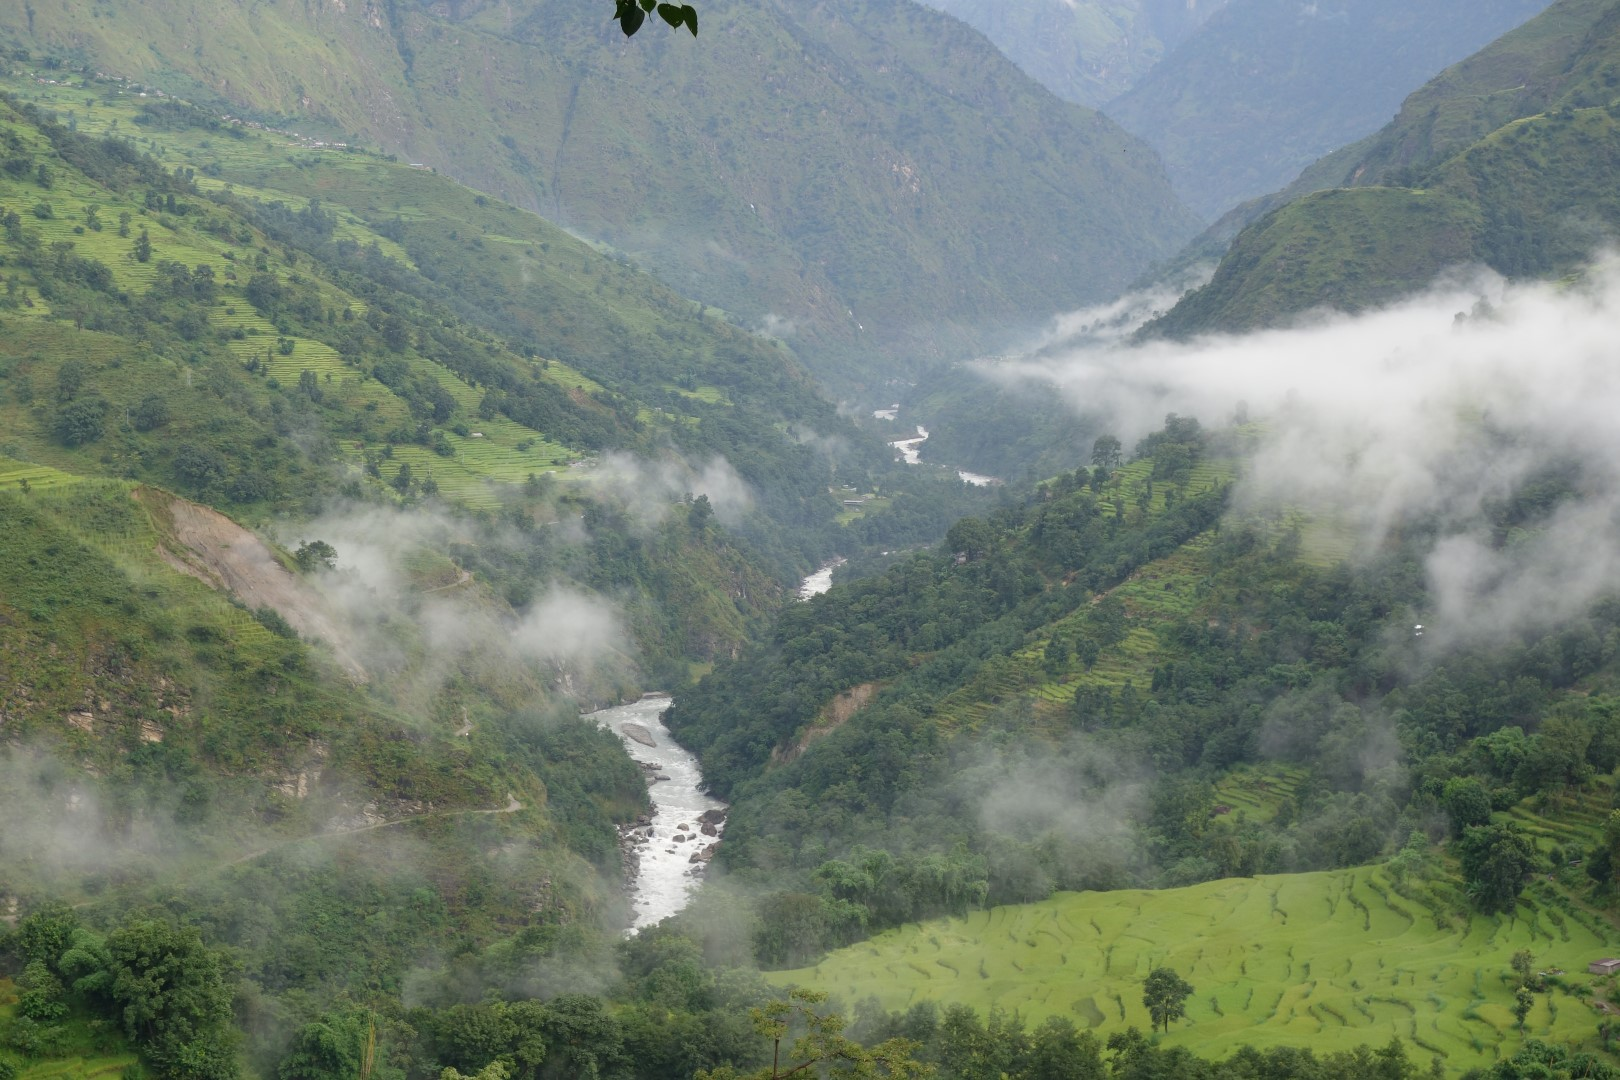 Beautiful Landscapes are everywhere - Annapurna circuit route